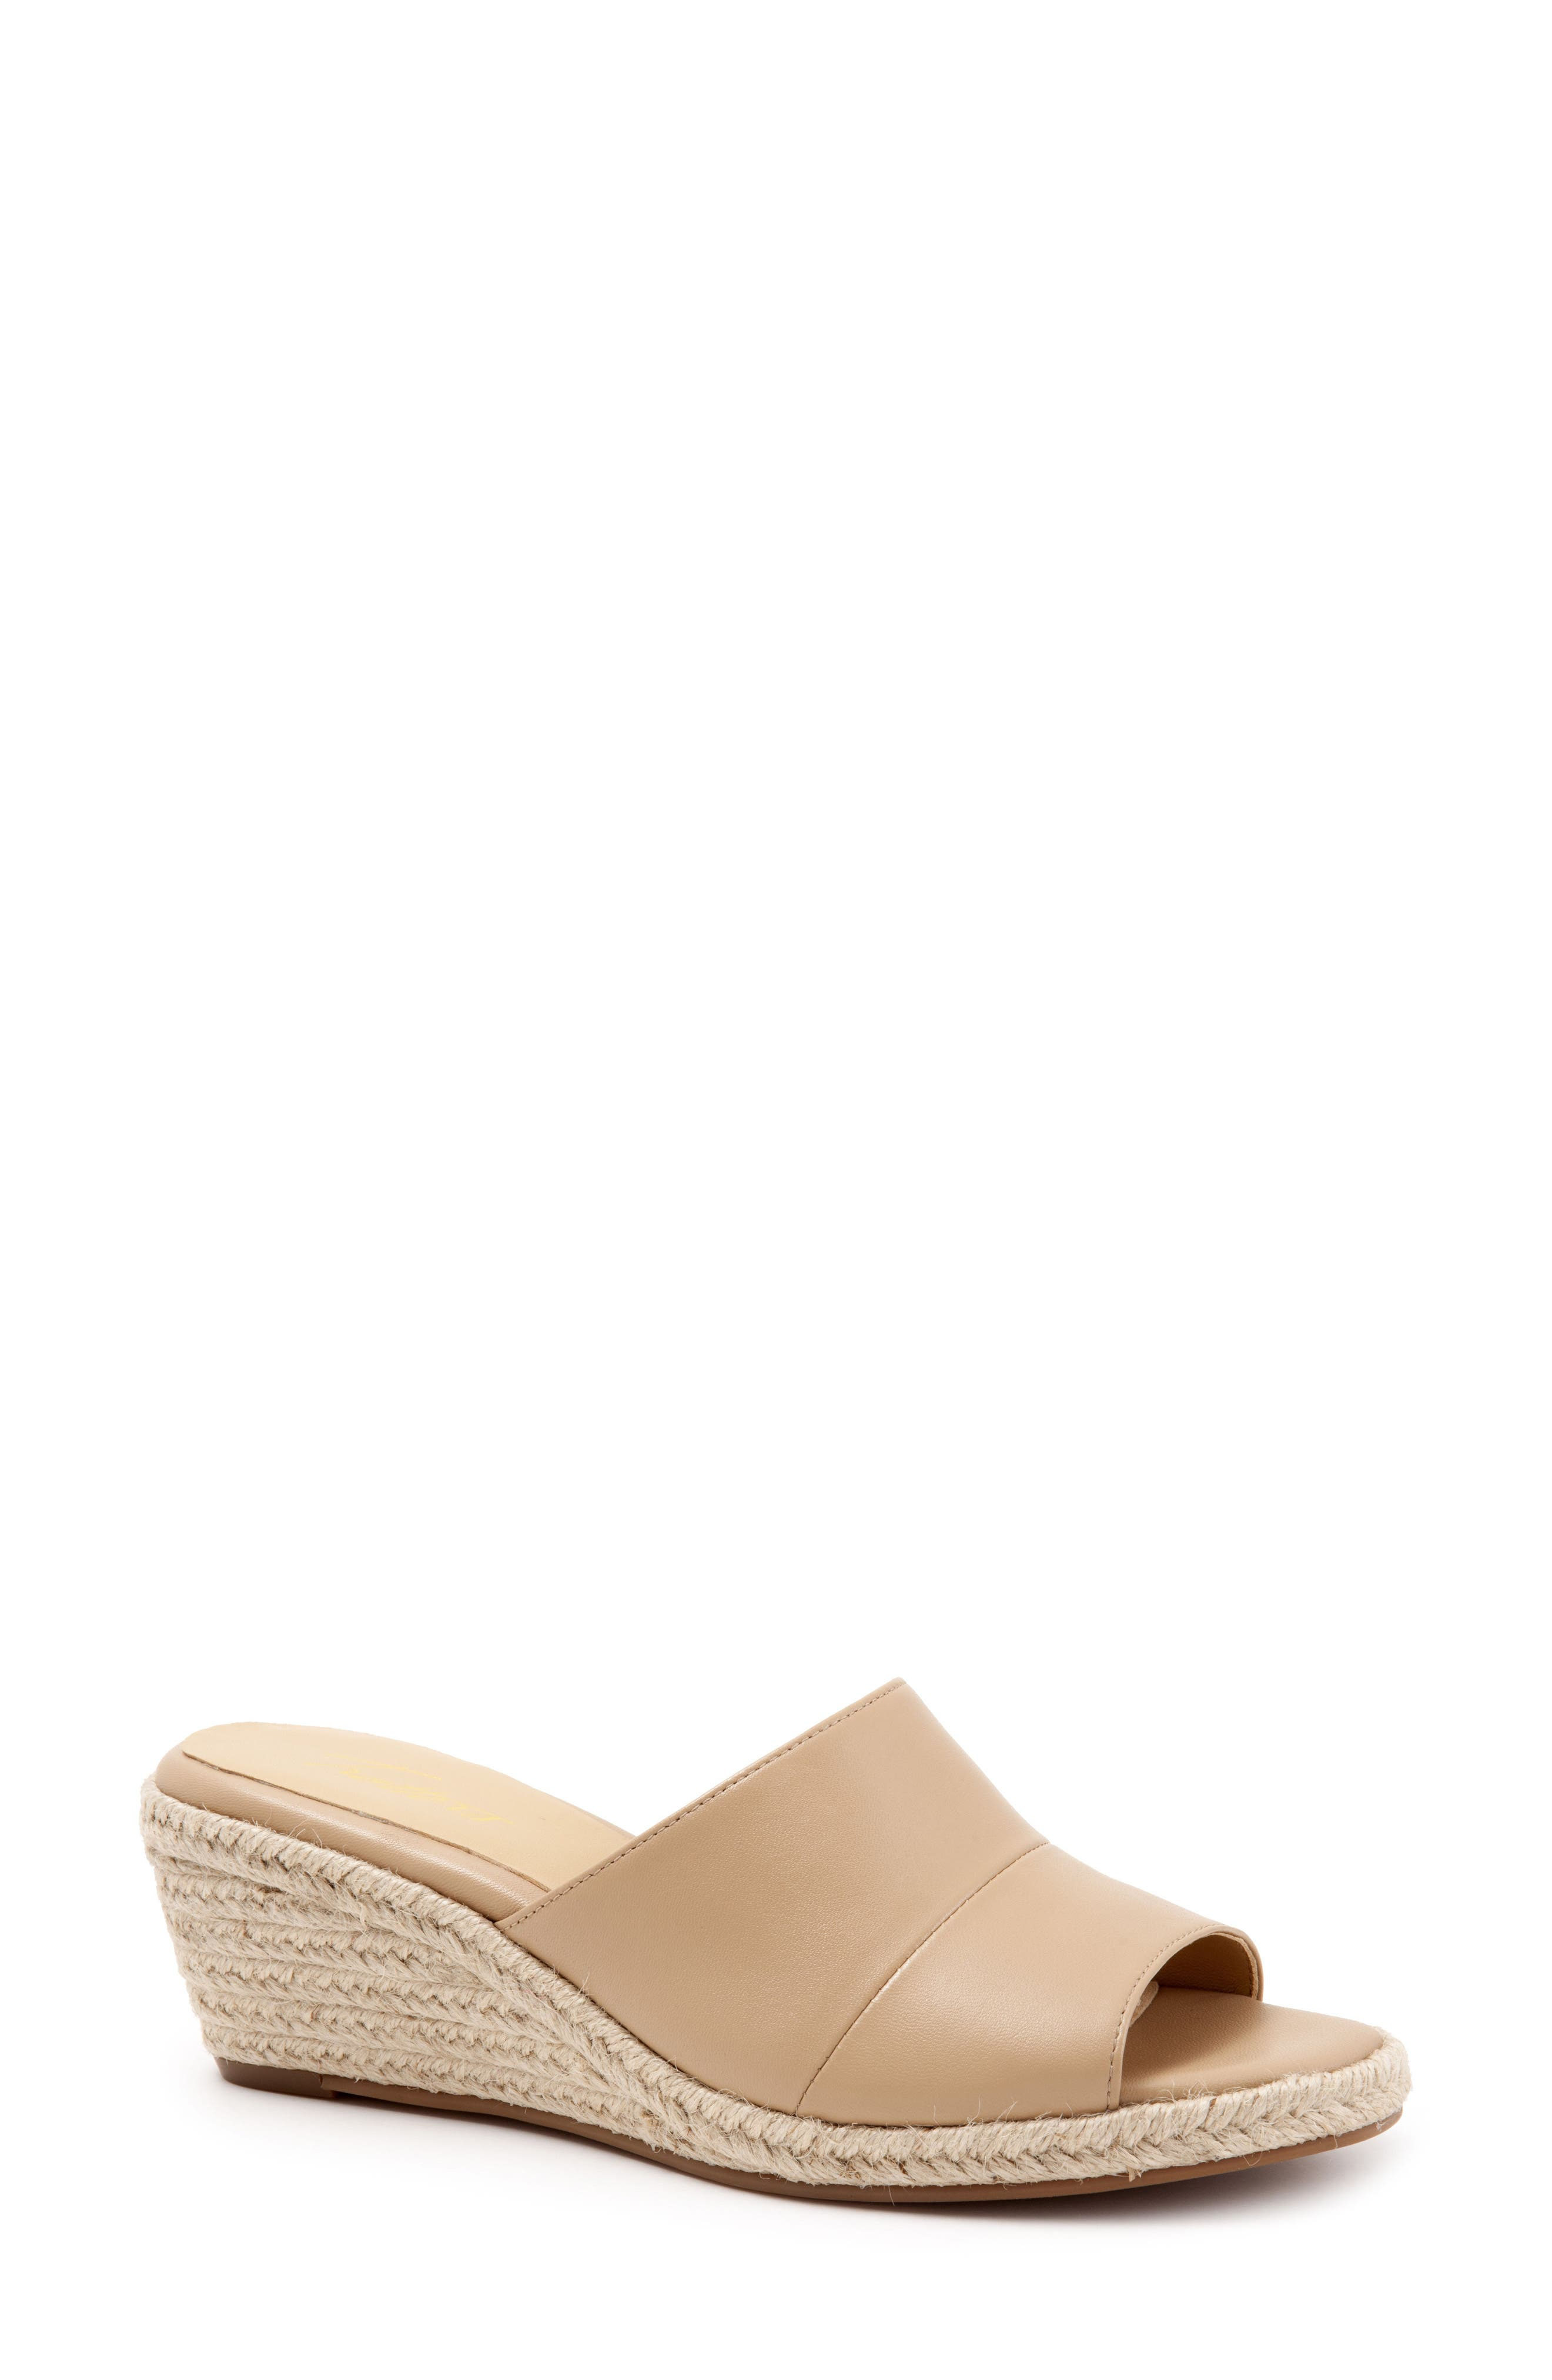 TROTTERS Colony Wedge Slide Sandal, Main, color, NUDE LEATHER